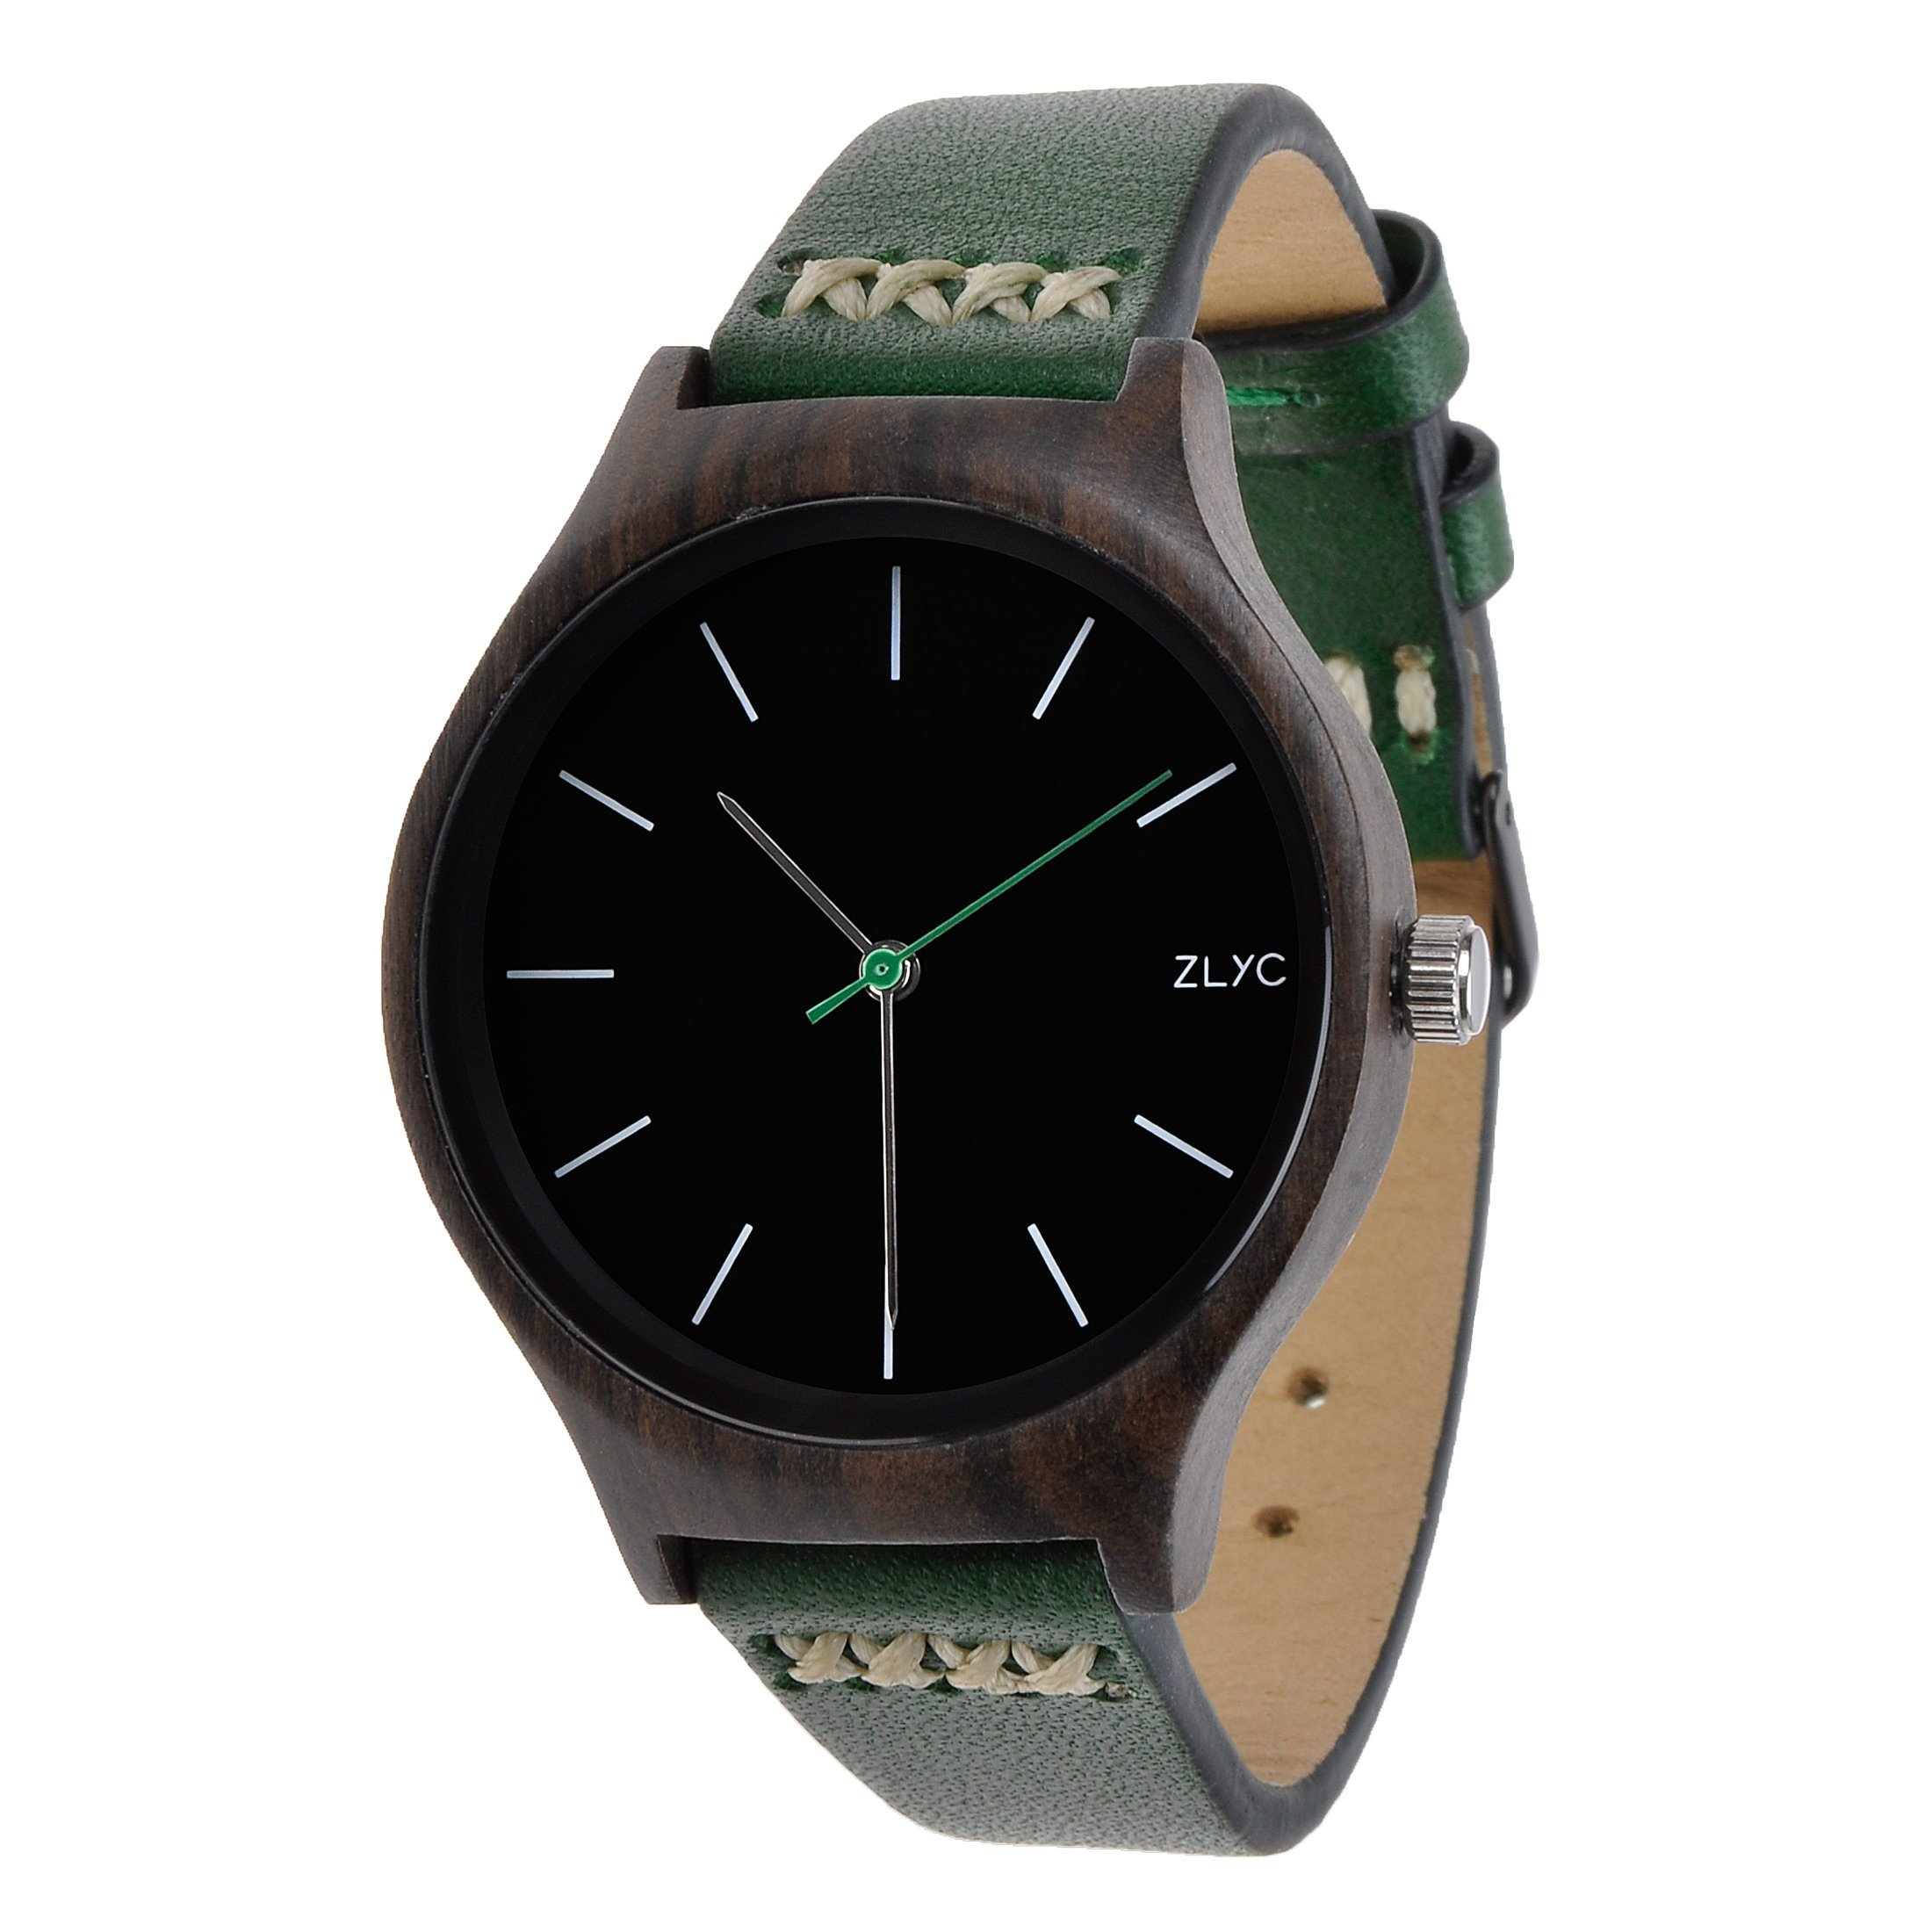 ZLYC Women Original Design Handmade Wooden classial Quartz Wrist Watch with Cowhide Strap(Green)